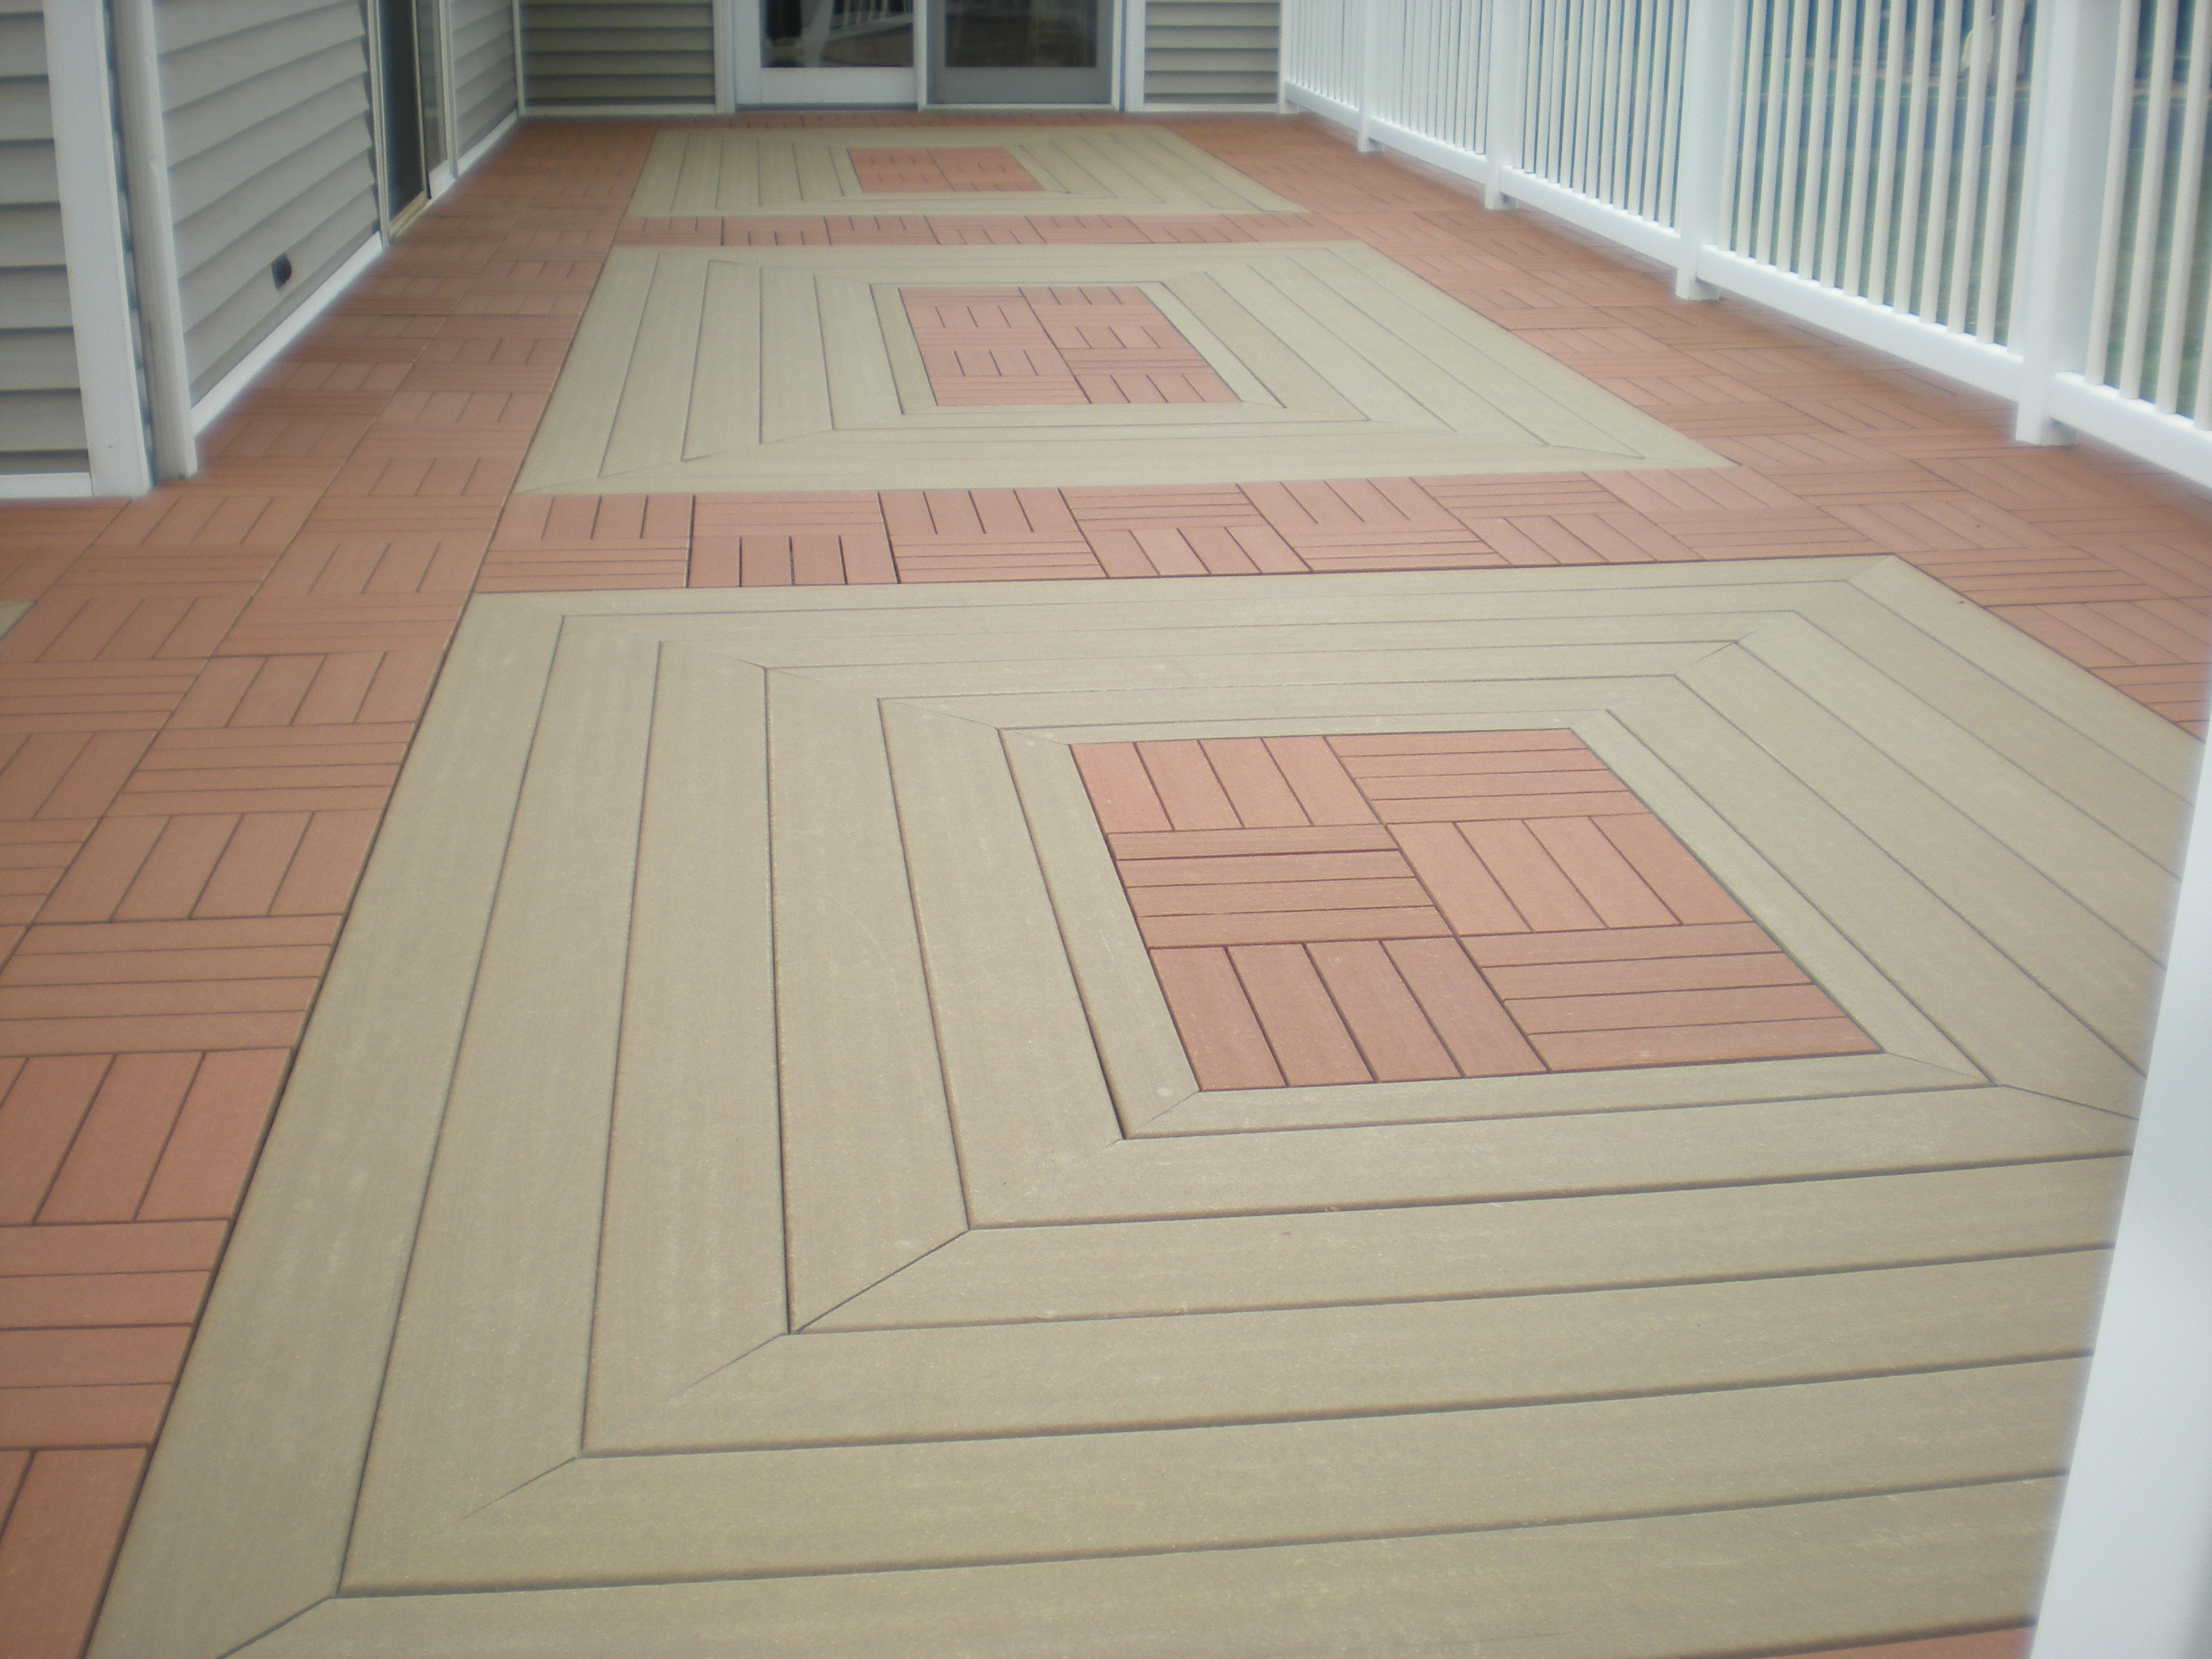 A Combination Of Moistureshield Composite Decking Ecoshield Deck Tiles Give New Look To An Existing